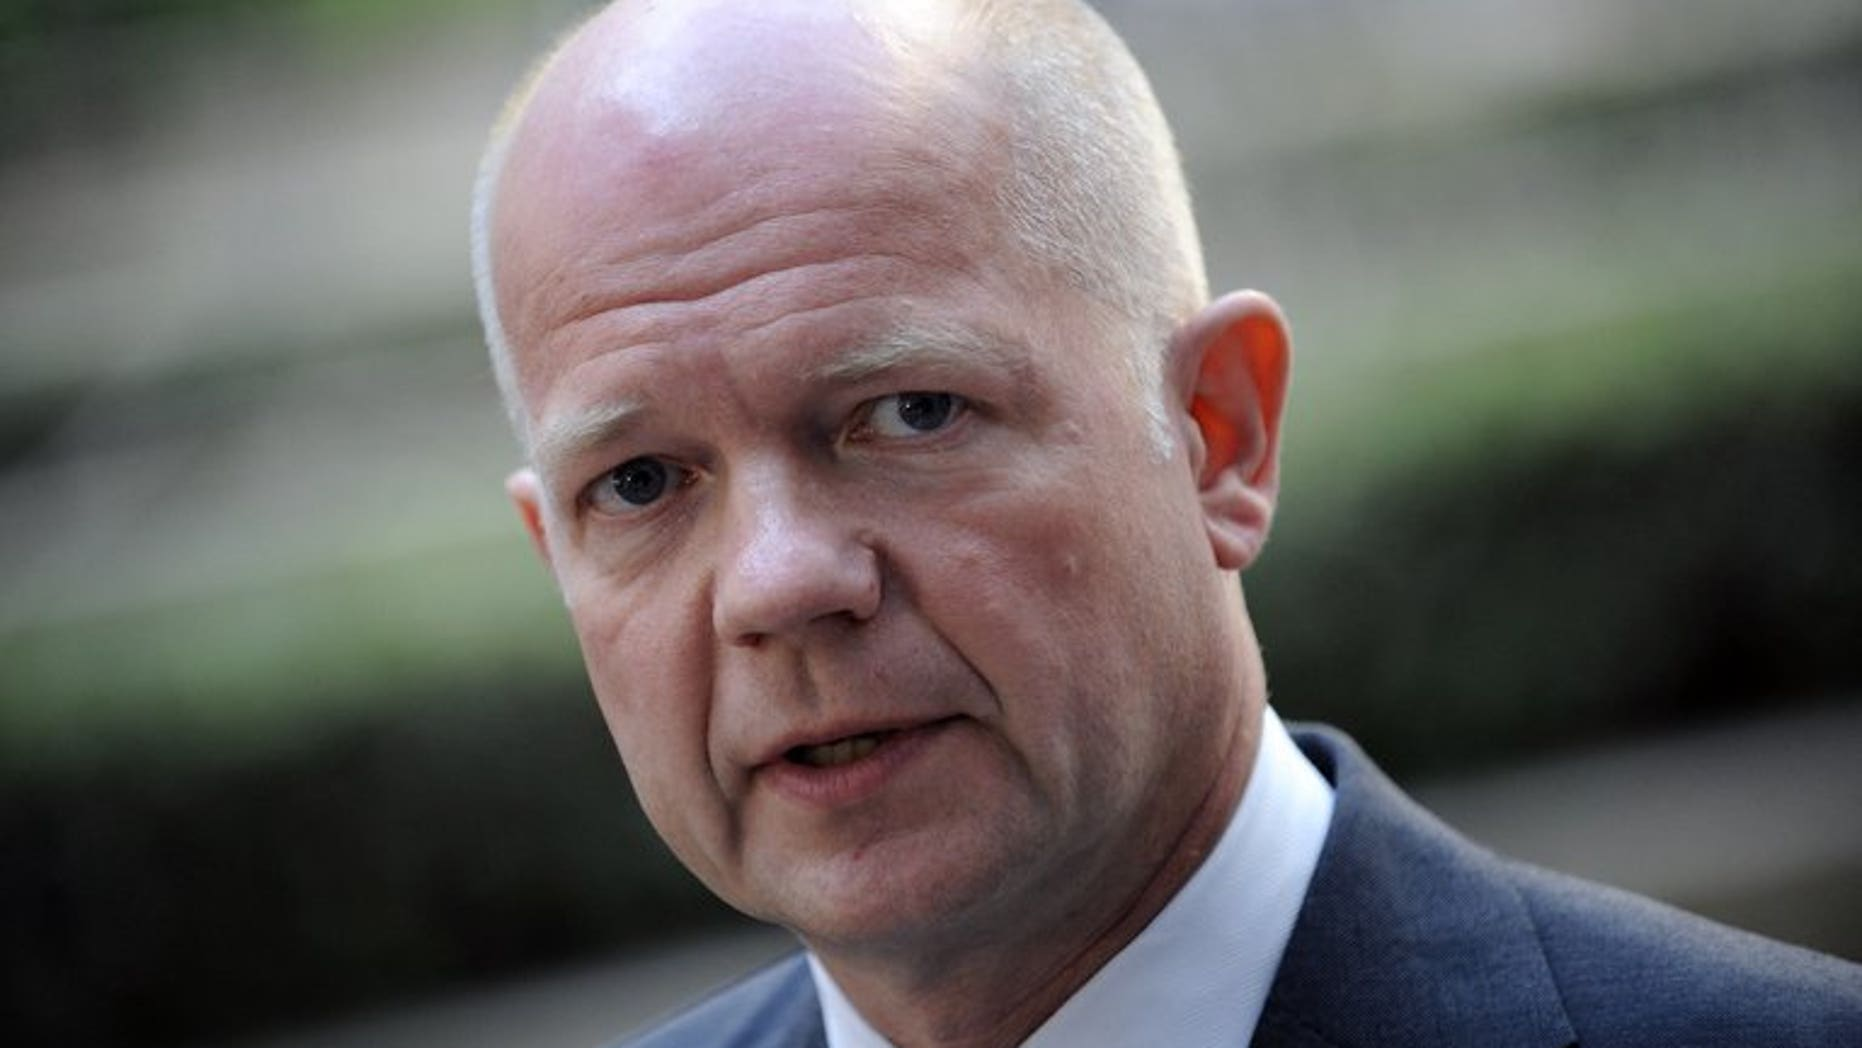 Britain's Foreign Secretary William Hague on July 22, 2013 at the EU Headquarters in Brussels. Britain's foreign minister has suggested a meeting with his Iranian counterpart and is open to better relations with the country, the ministry said Wednesday.